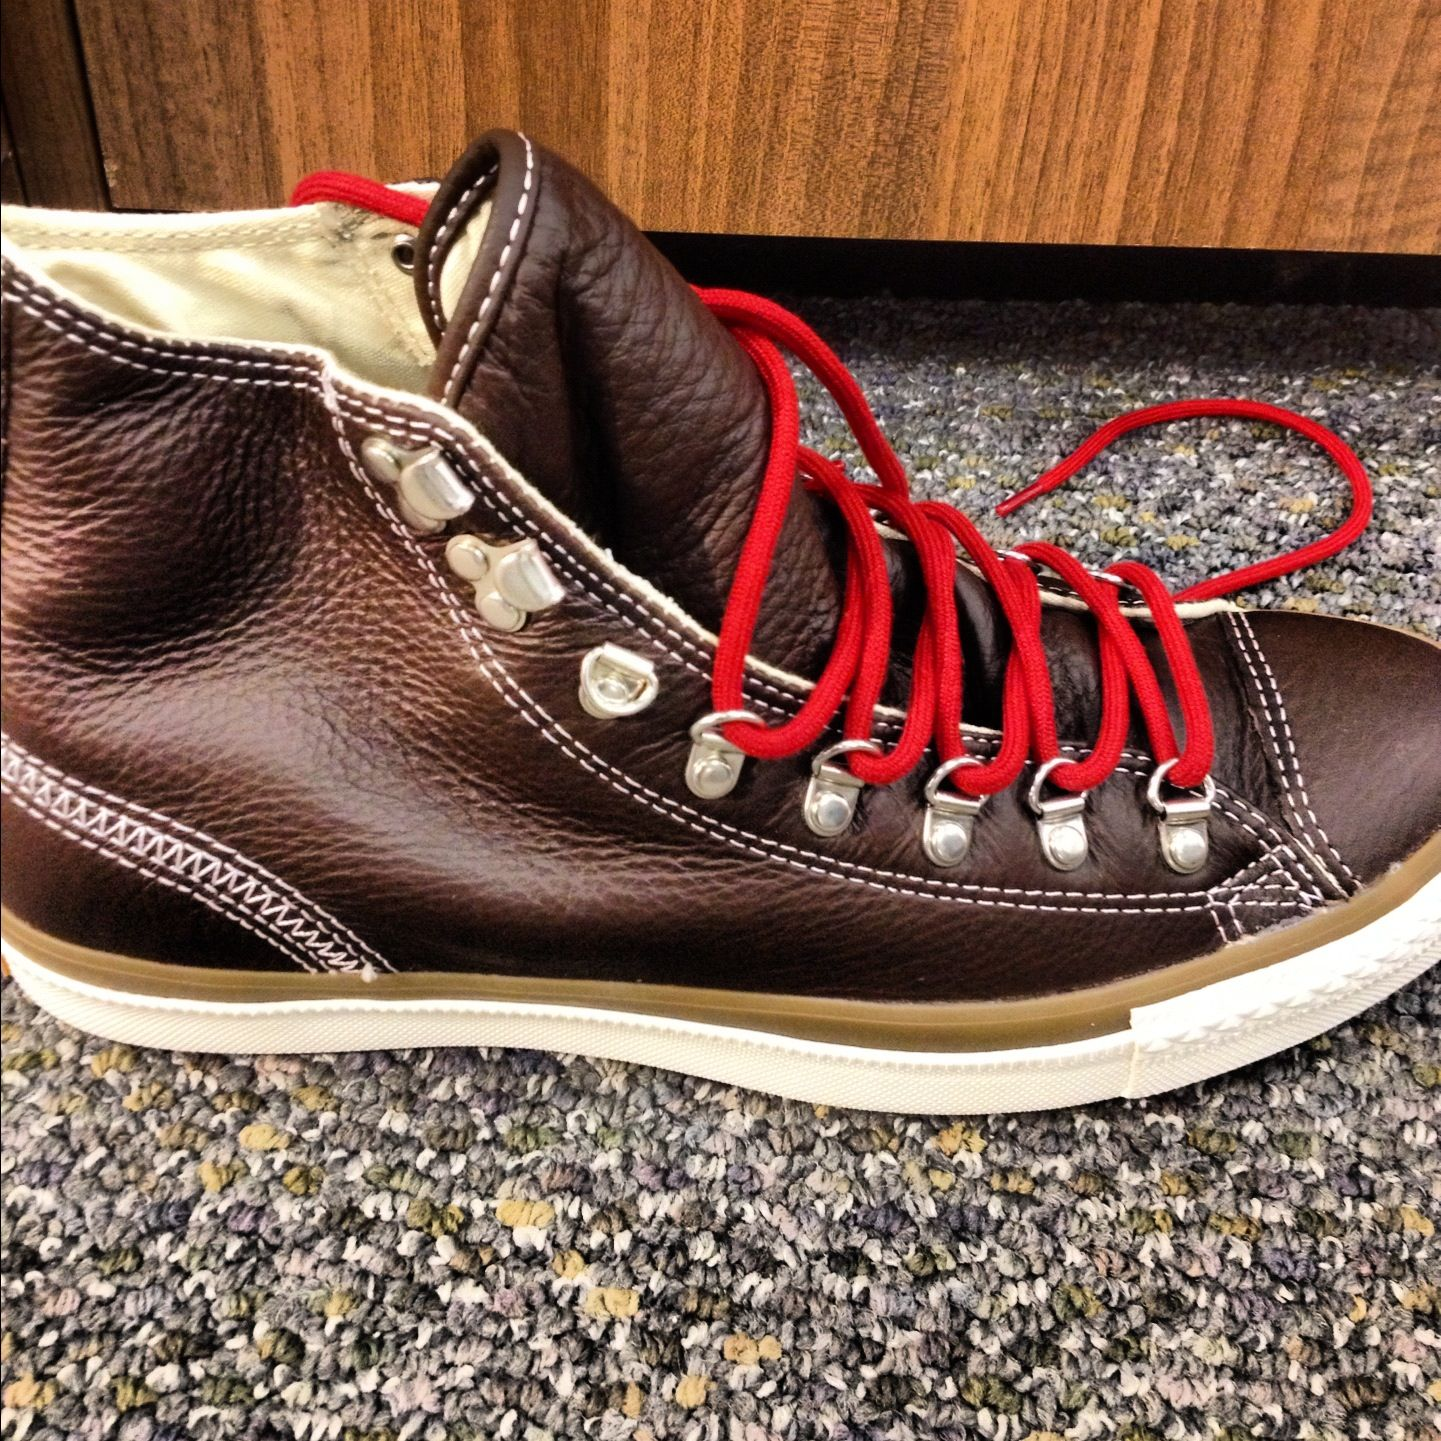 Sneakers that look like boots #converse